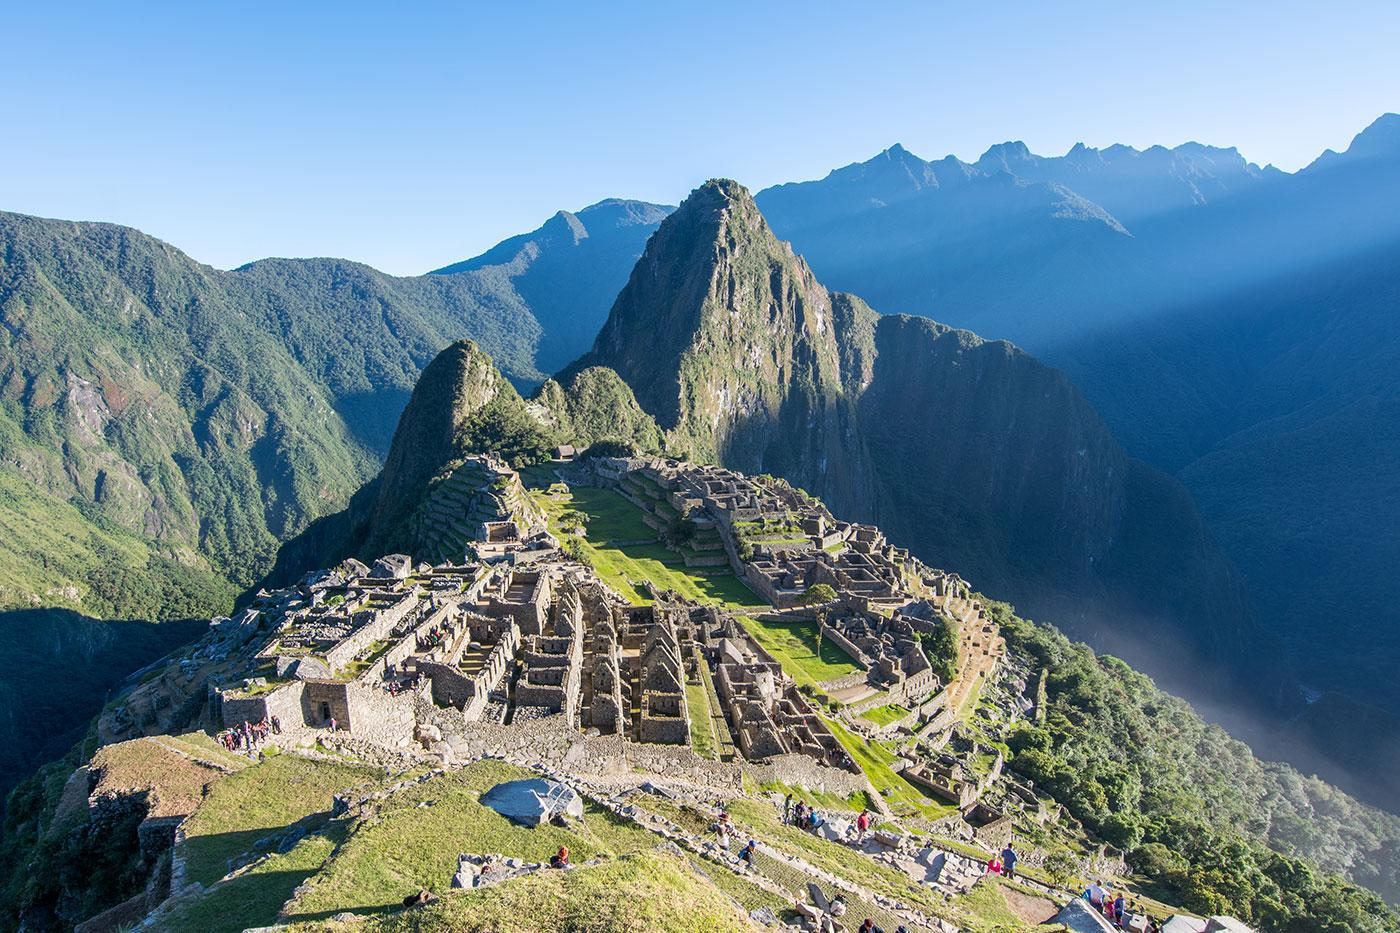 Sunrise at the Incan ruins of Machu Picchu. Photo: BBC/Matthew Wright